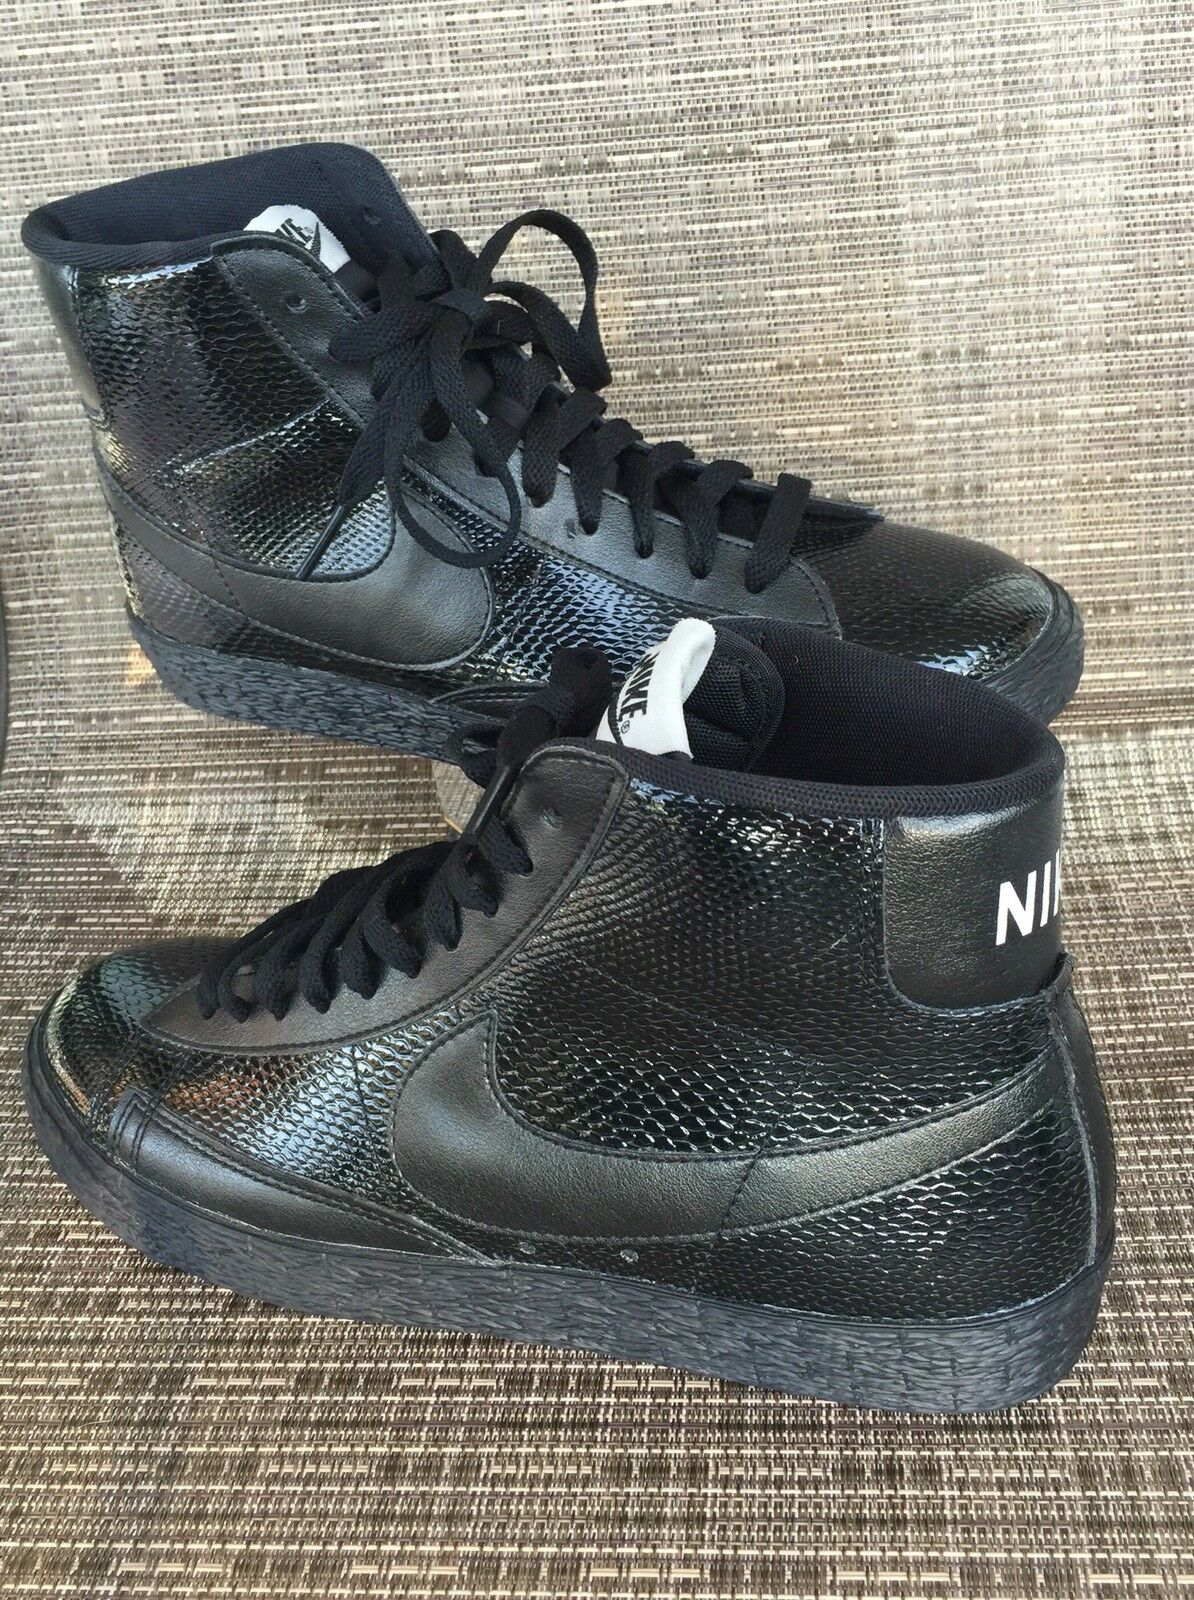 088d3df7430a ... Nike W Blazer MID MID MID Leather Premium 685225-001 Black Shoes size  US 8 ...